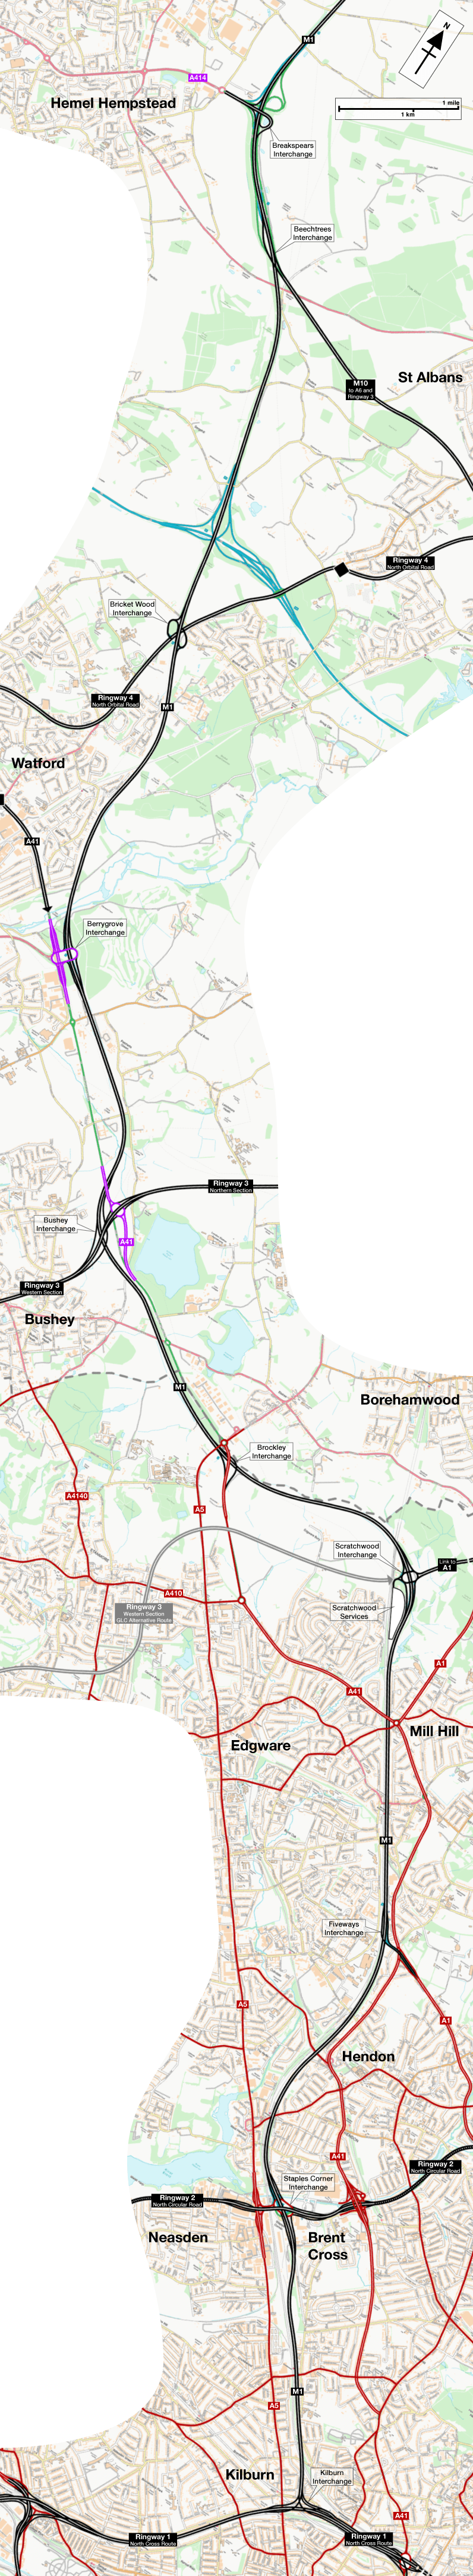 Map of M1